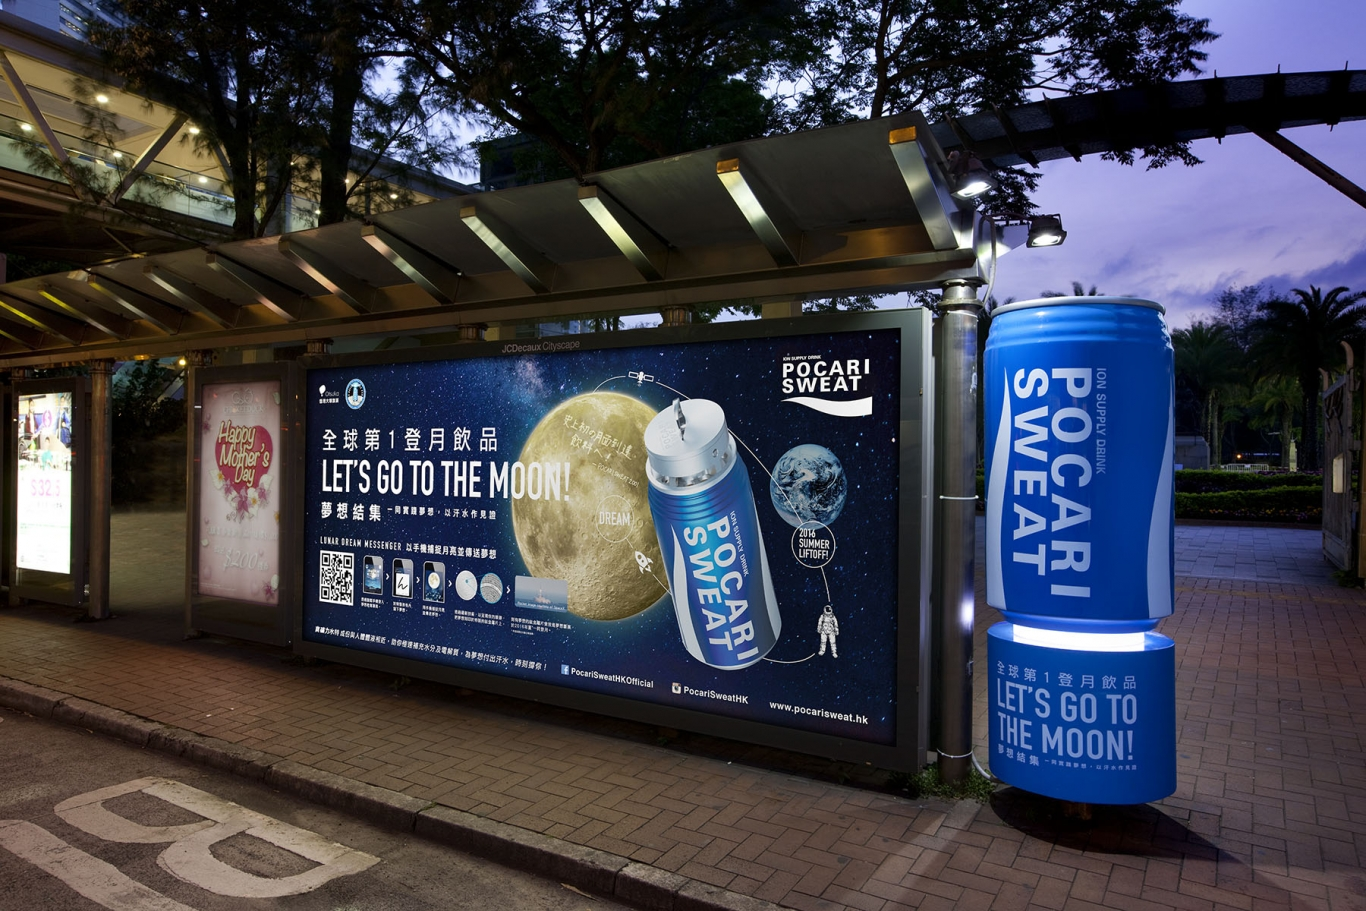 Pocari Sweat Bus Shelter Ad